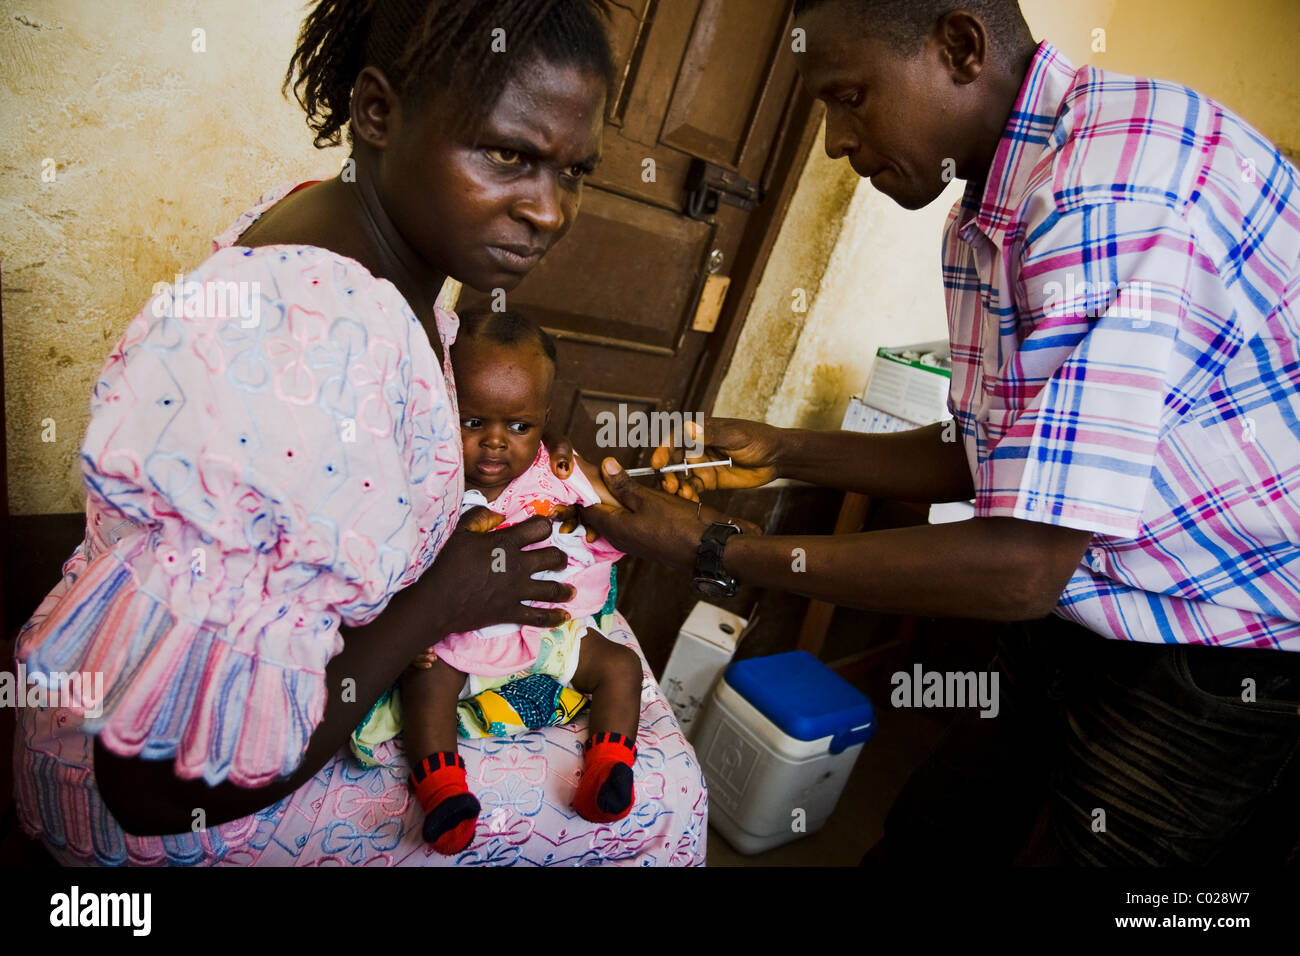 A health worker vaccinates a child against measles at the Binkolo community health center in Binkolo, Sierra Leone - Stock Image